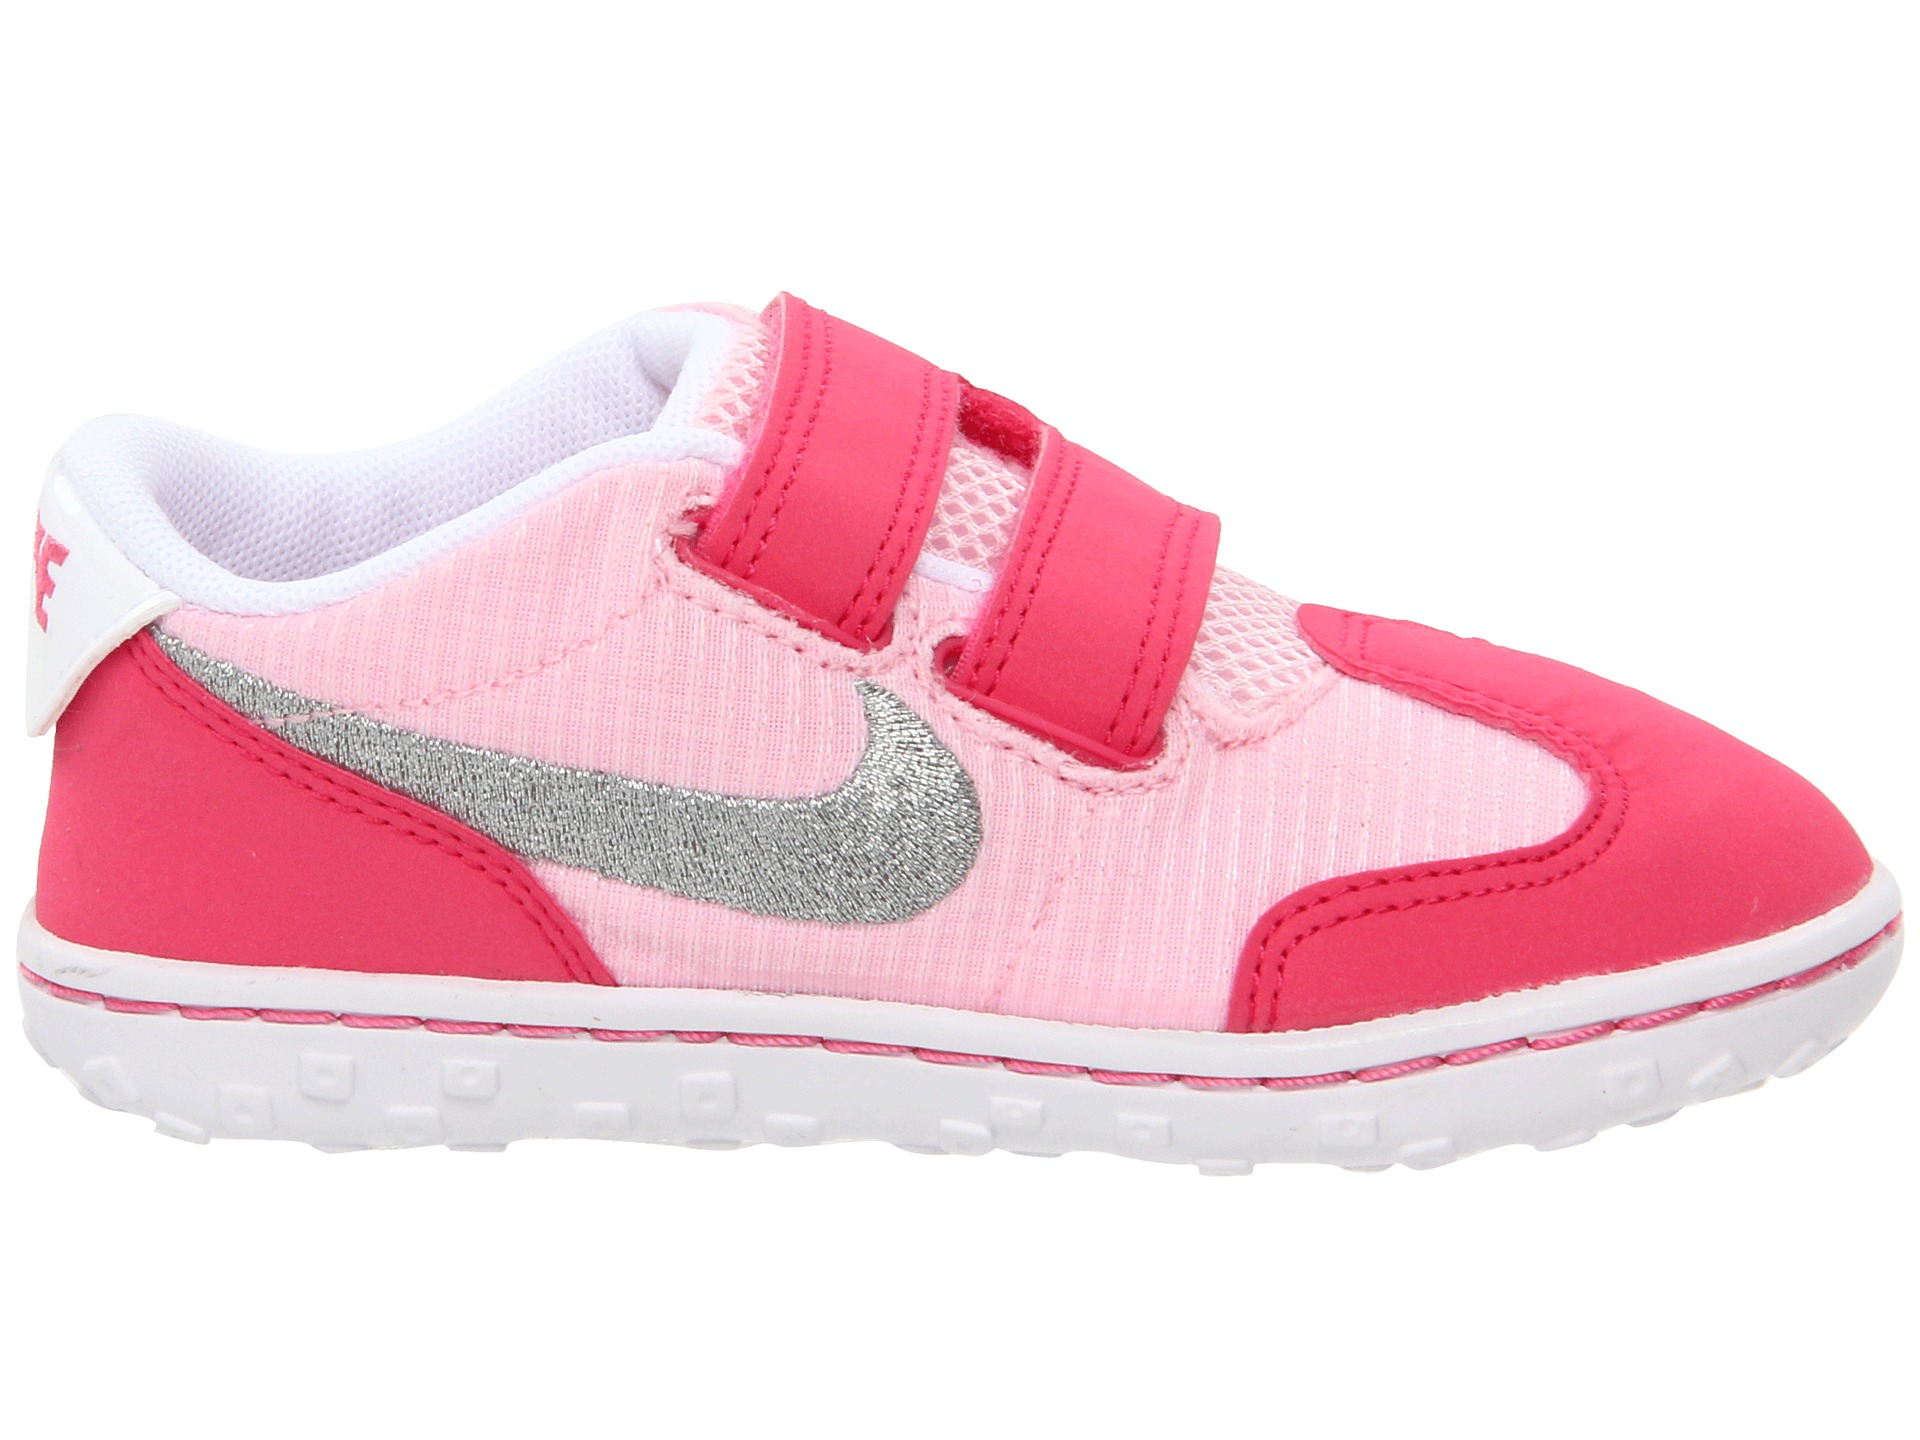 Toddler Nike Walking Shoes For Wide Feet